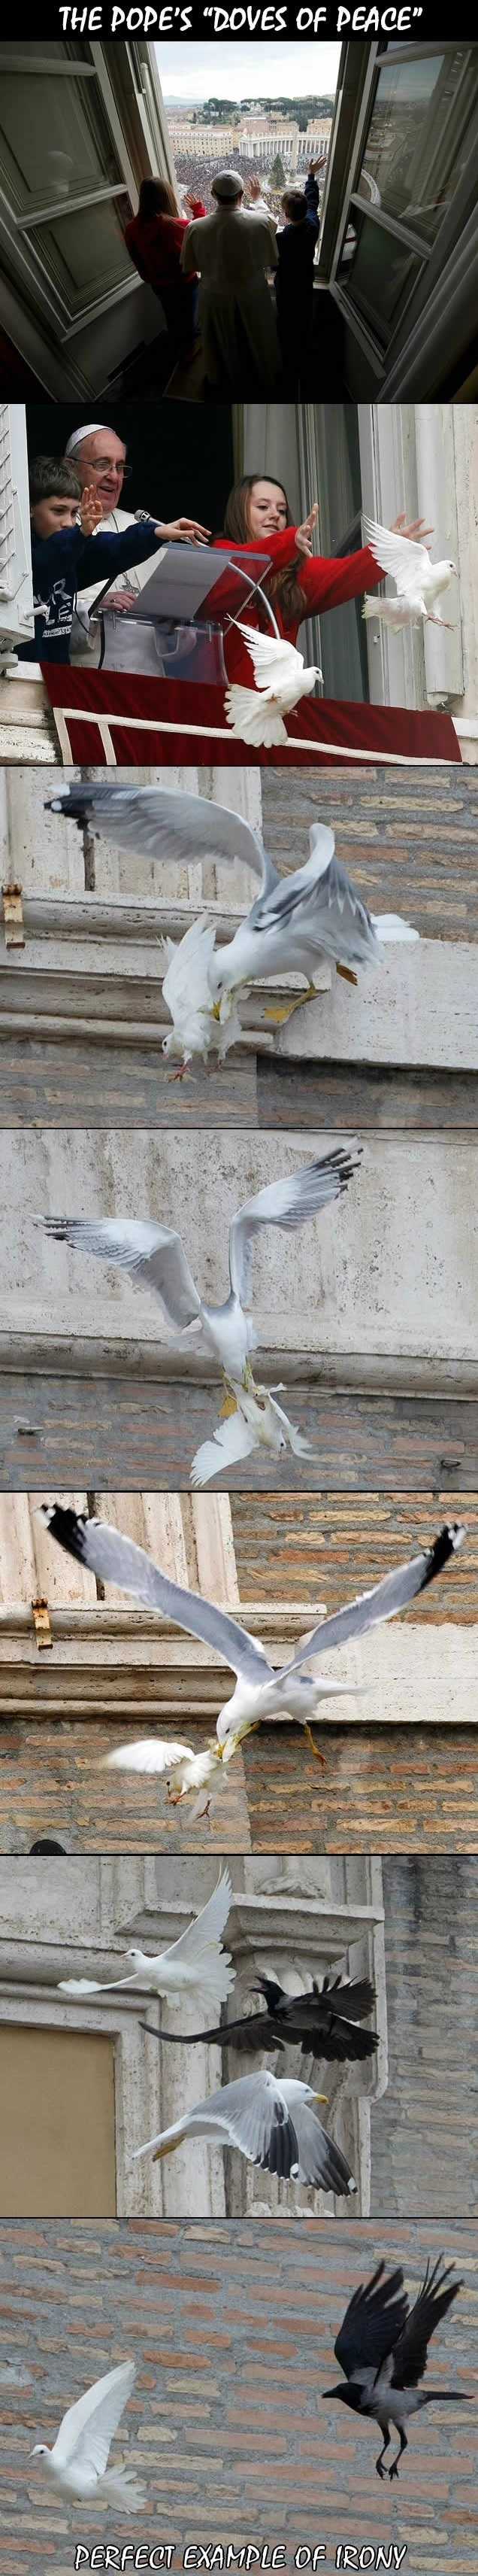 funny-picture-vatican-pigeons-irony